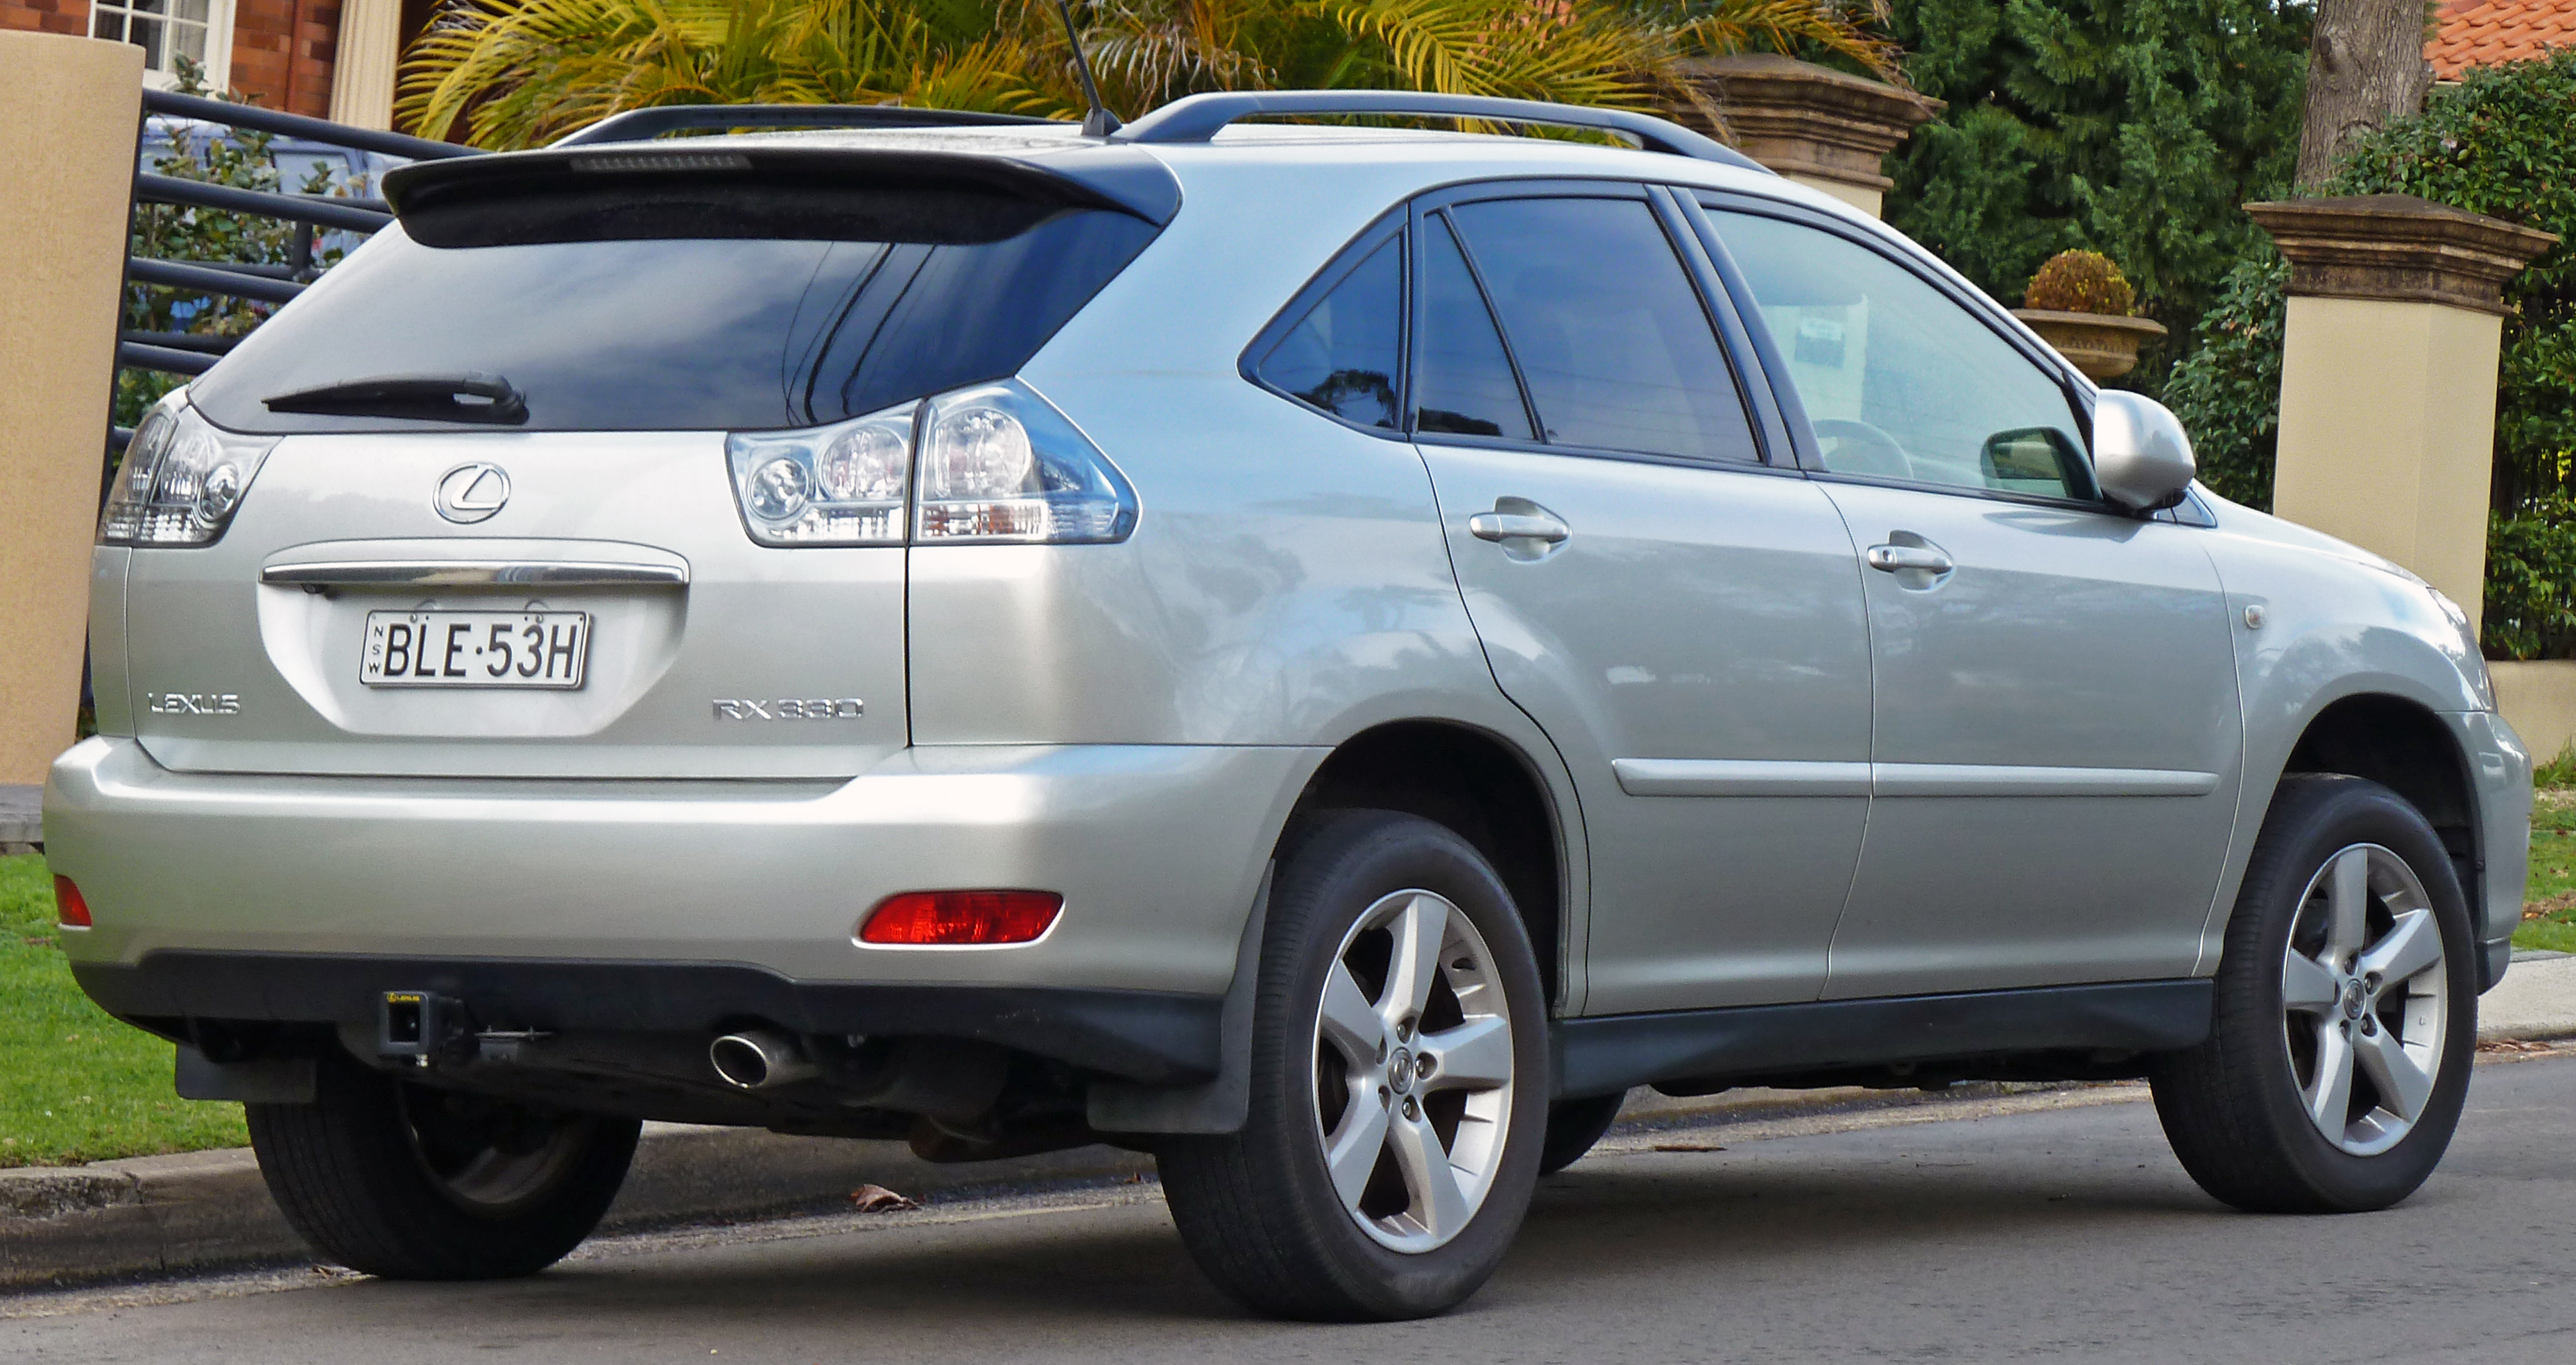 File:2004 2005 Lexus RX 330 (MCU38R) Sports Luxury Wagon 04.